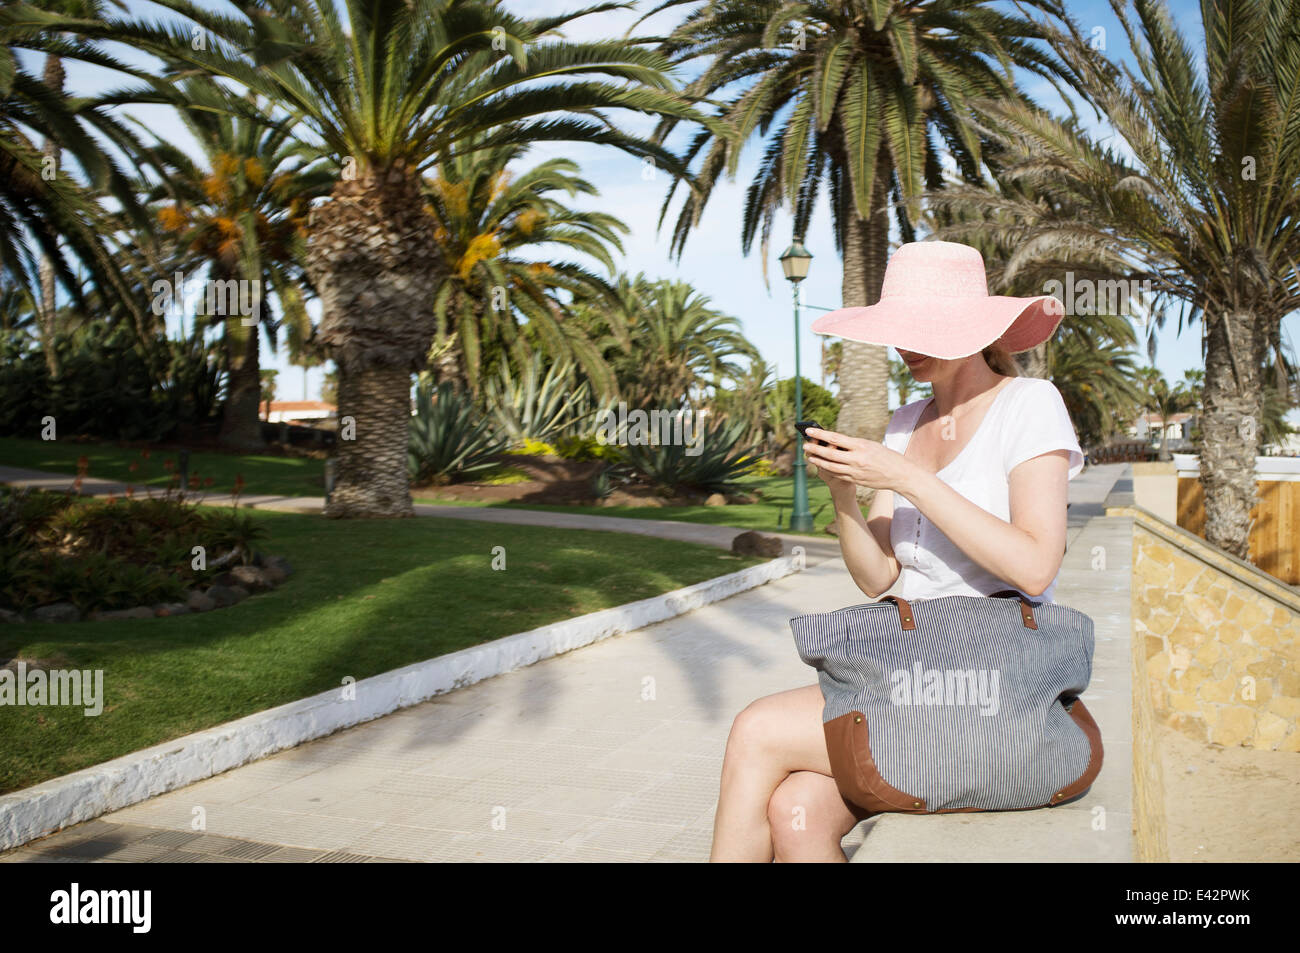 Mid adult woman texting on smartphone in park gardens at coast Banque D'Images